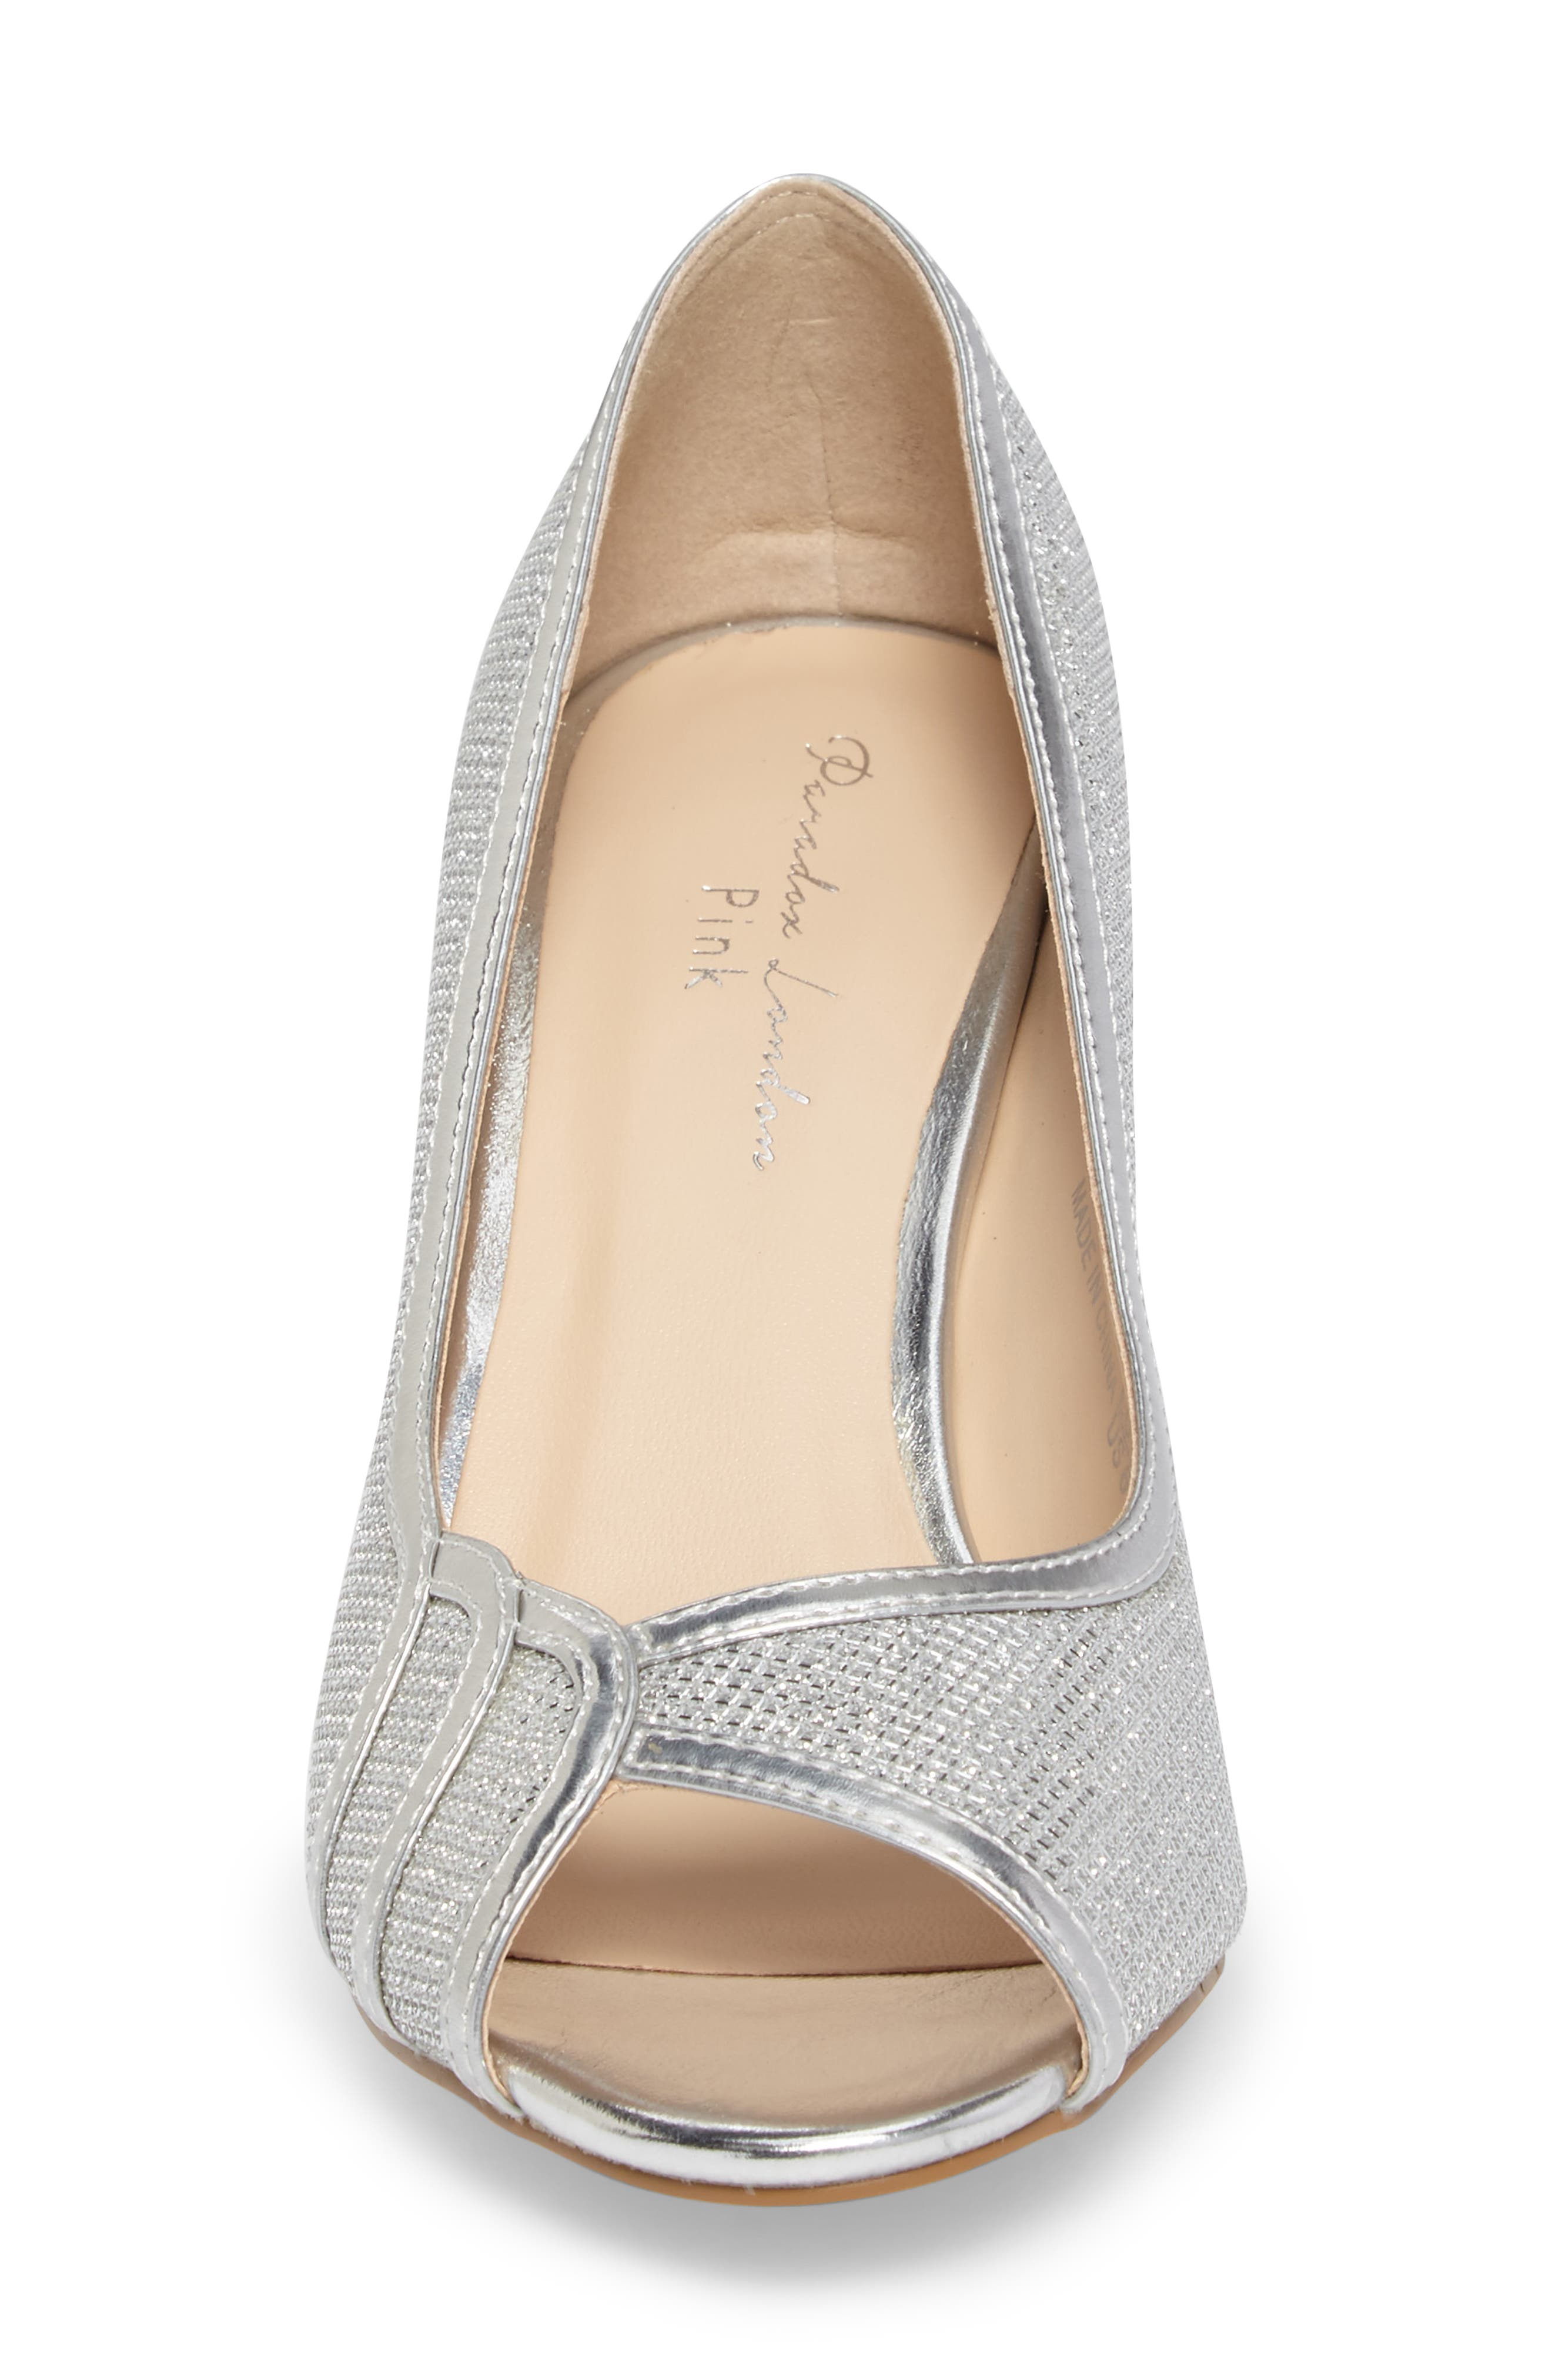 Chester Peep Toe Pump,                             Alternate thumbnail 4, color,                             SILVER